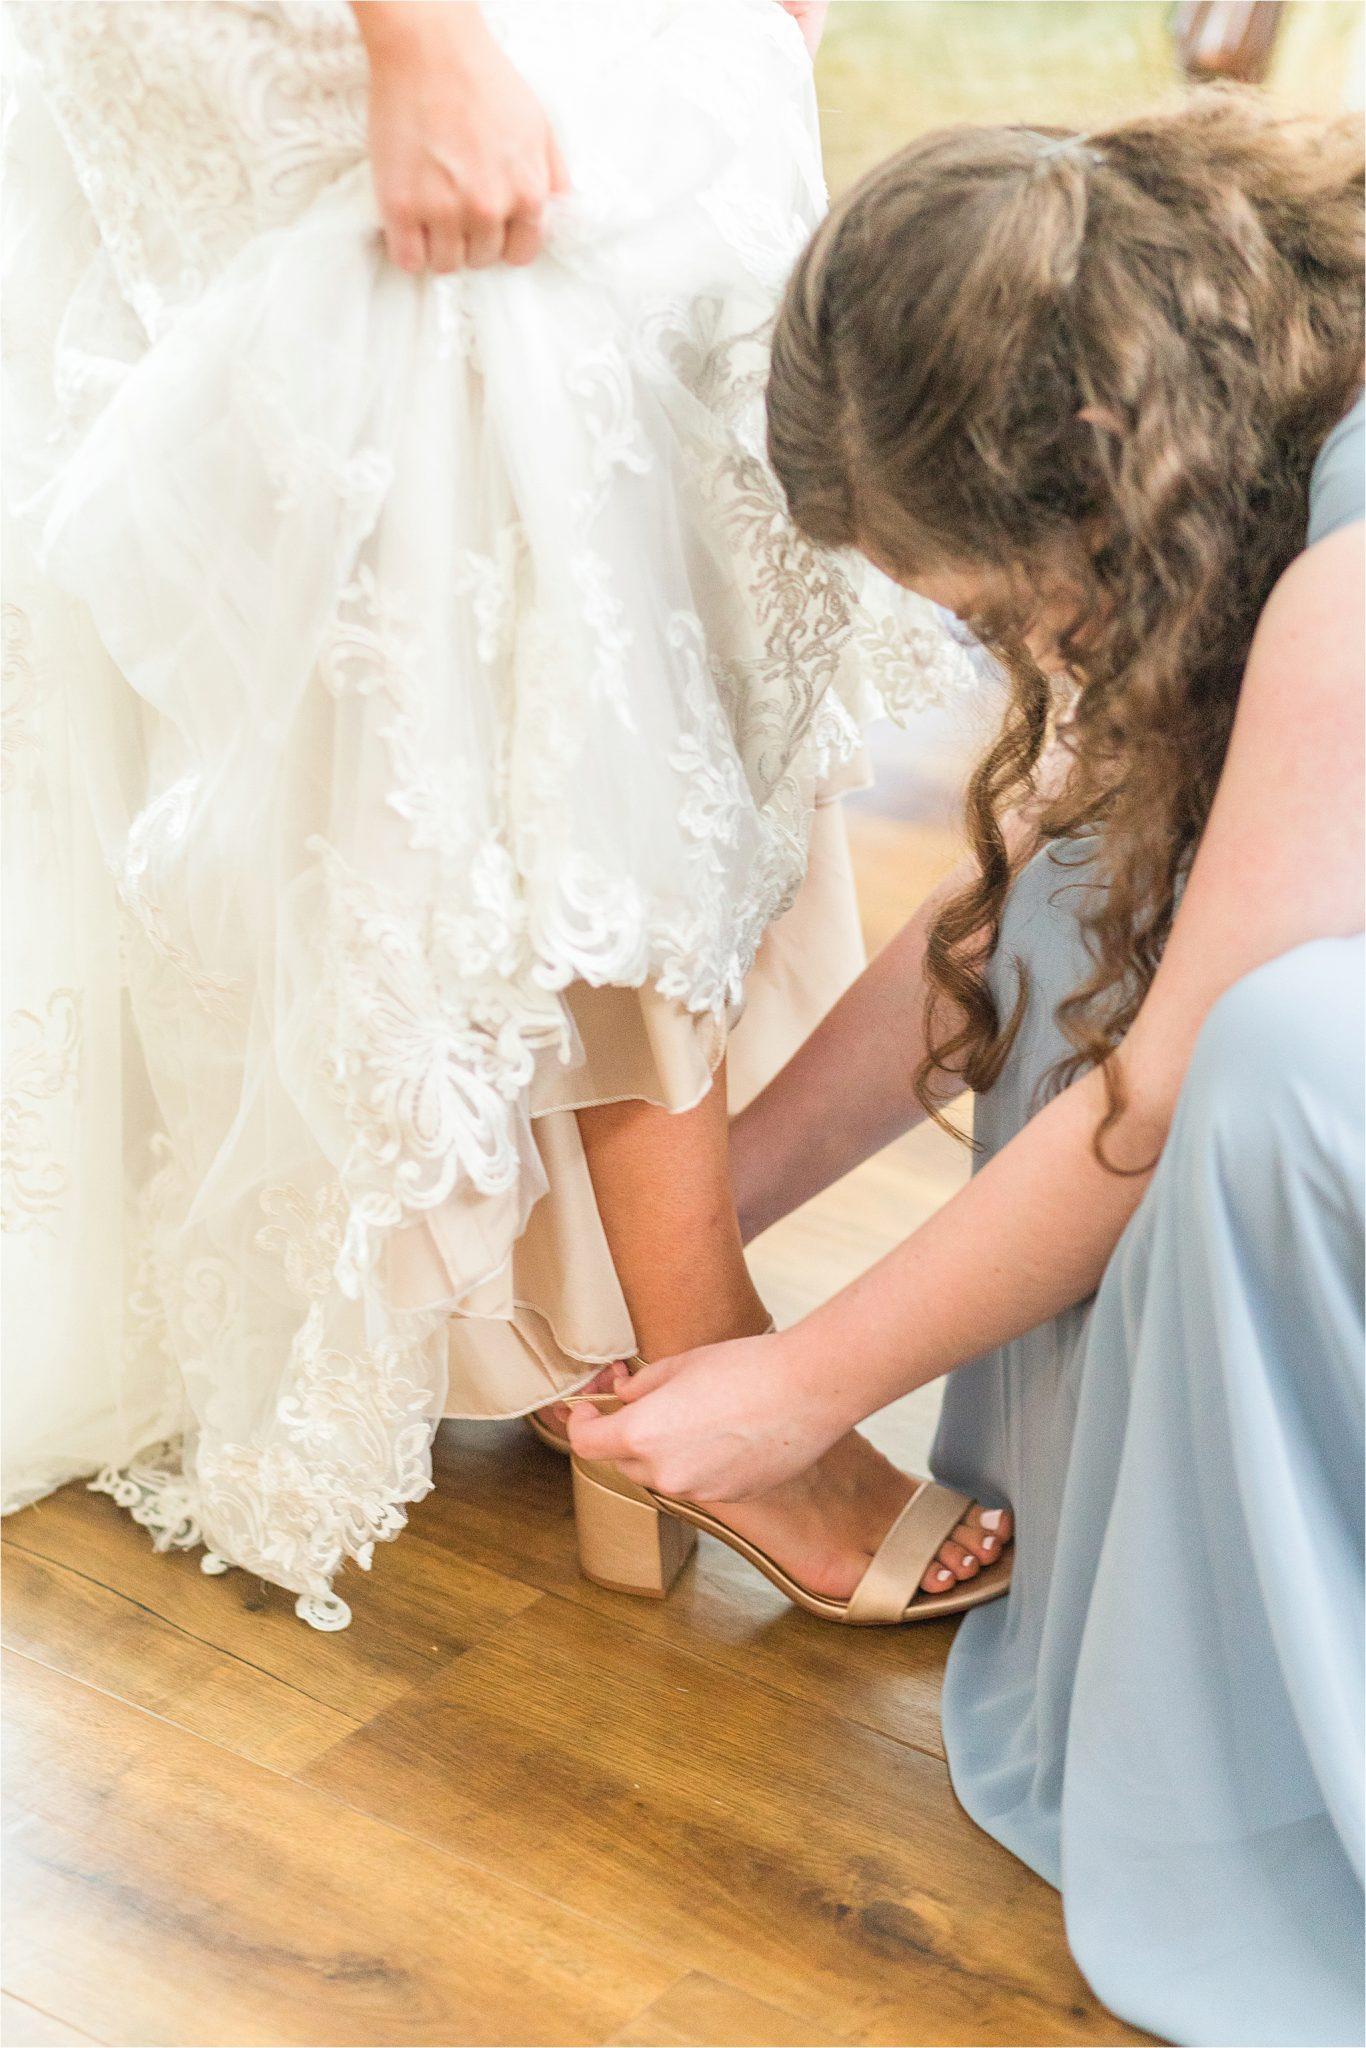 precious-moments-getting-ready-rose-gold-champagne-wedding shoes-maid of honor-precious moments